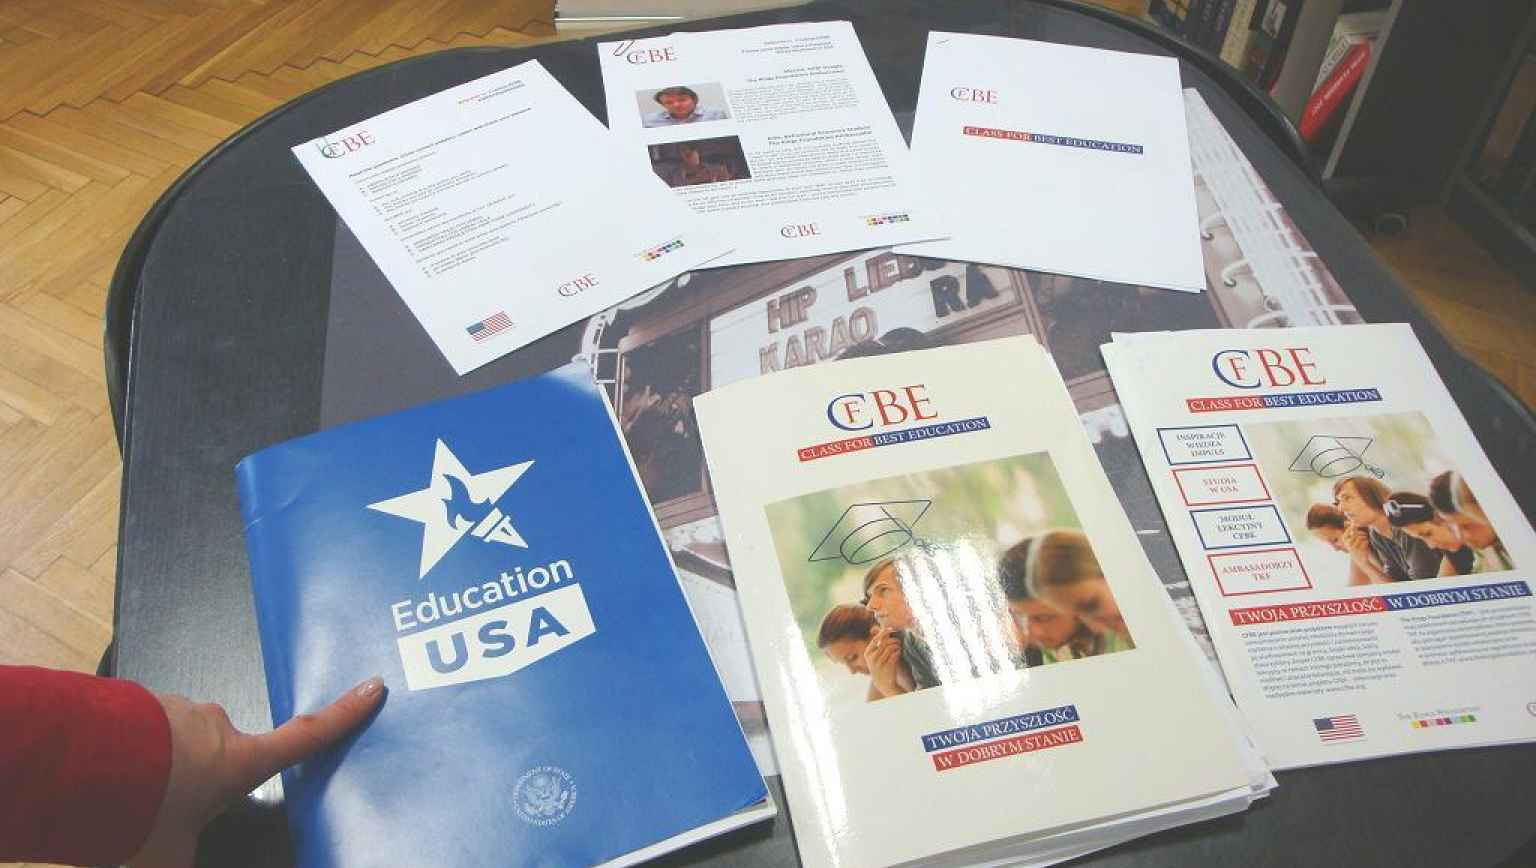 EducationUSA Advising in Radom, Poland